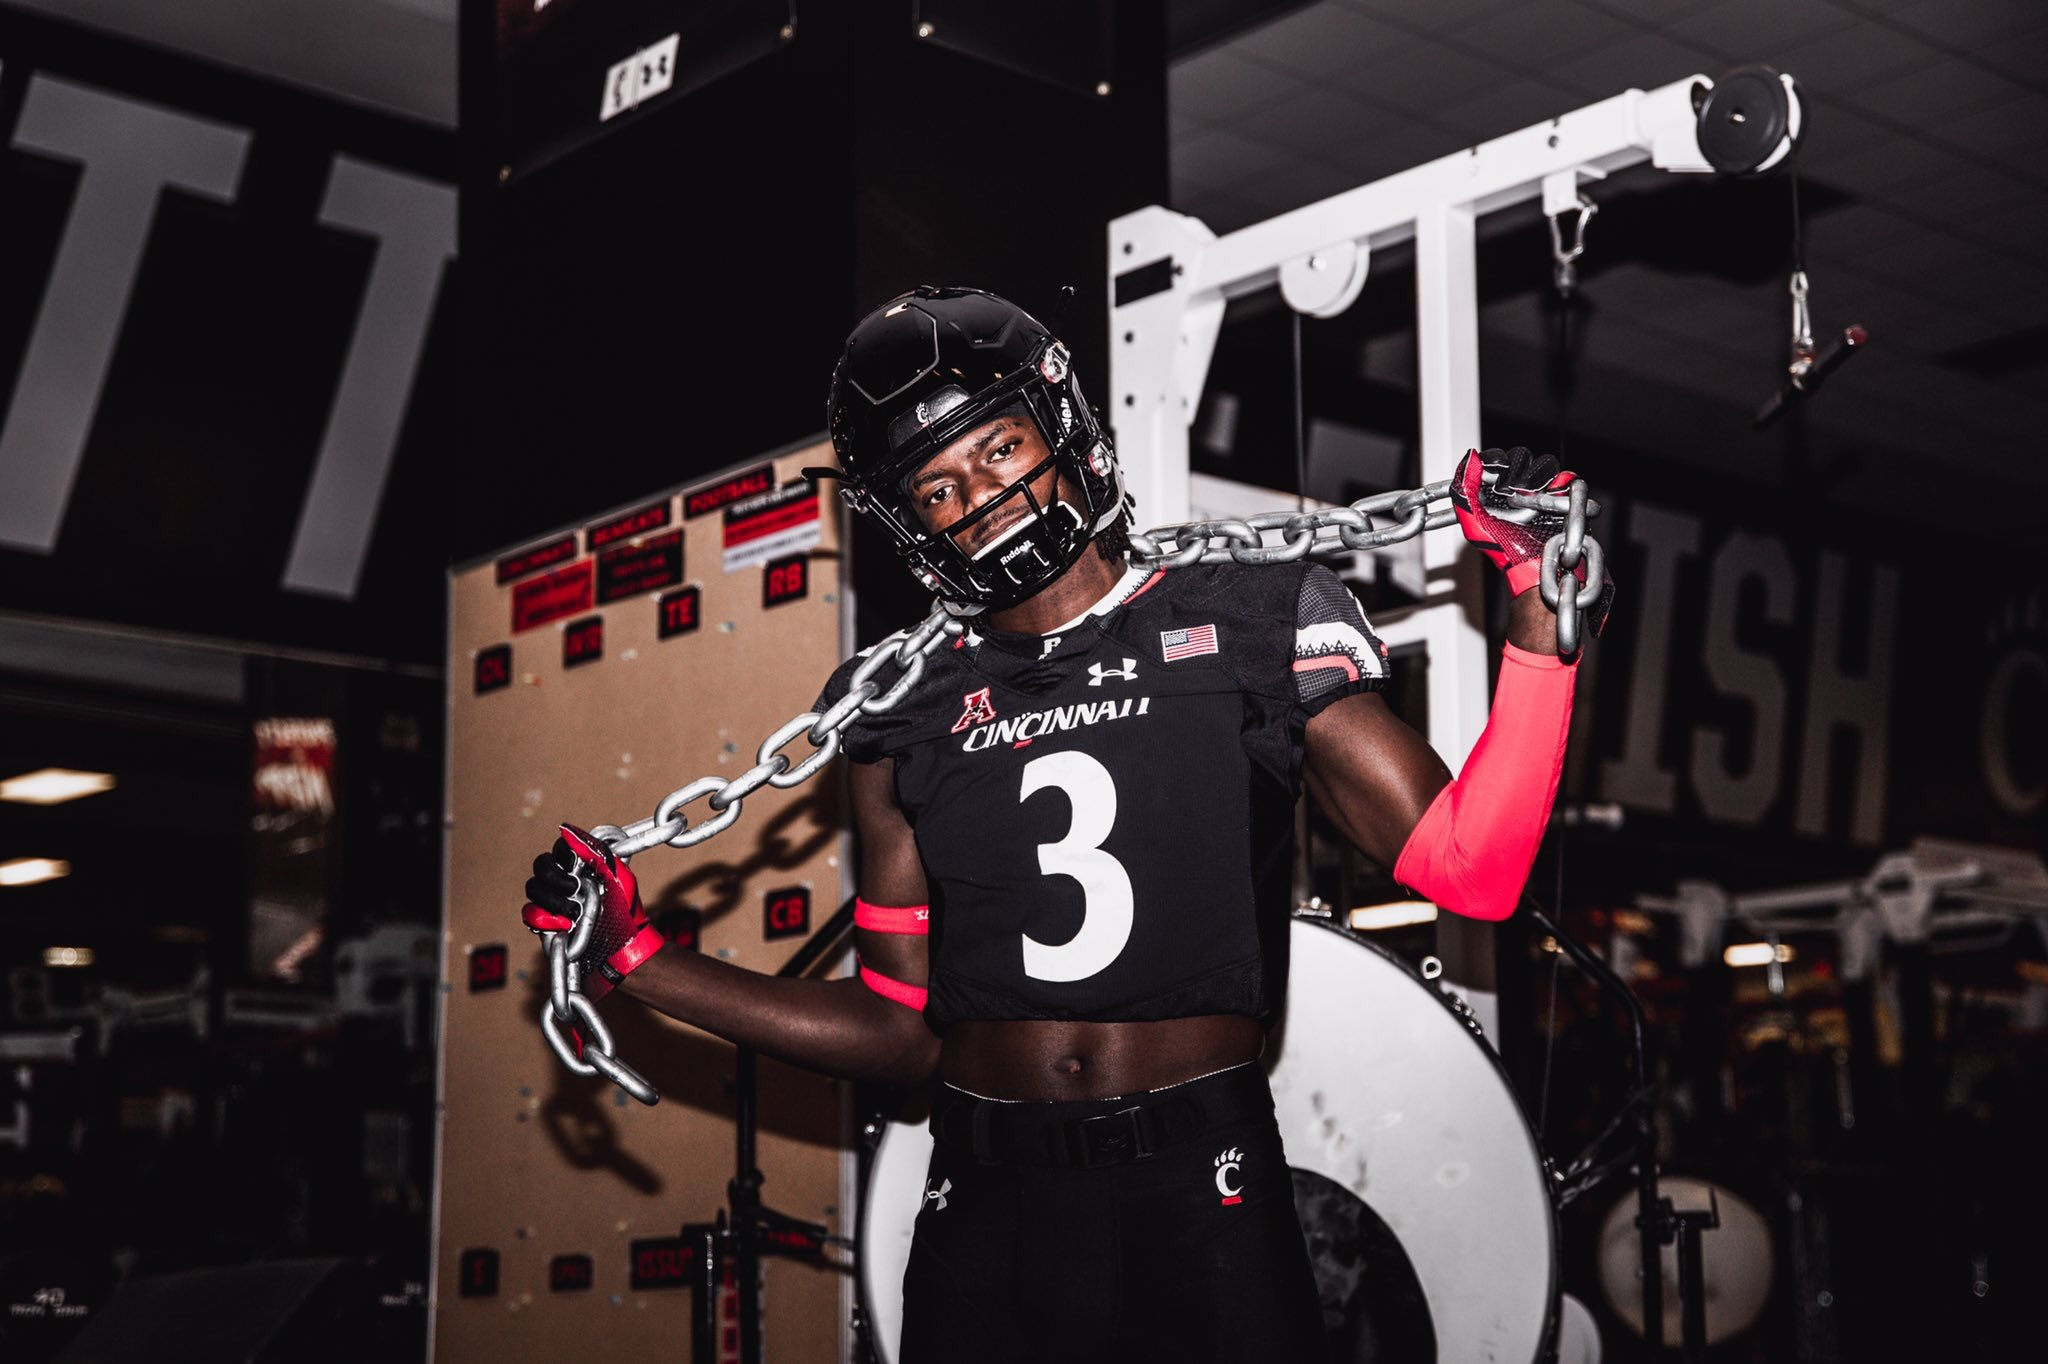 2020 Juco Wr Dalrone Donaldson Enjoyed His Recent Cincinnati Visit The Front Office News